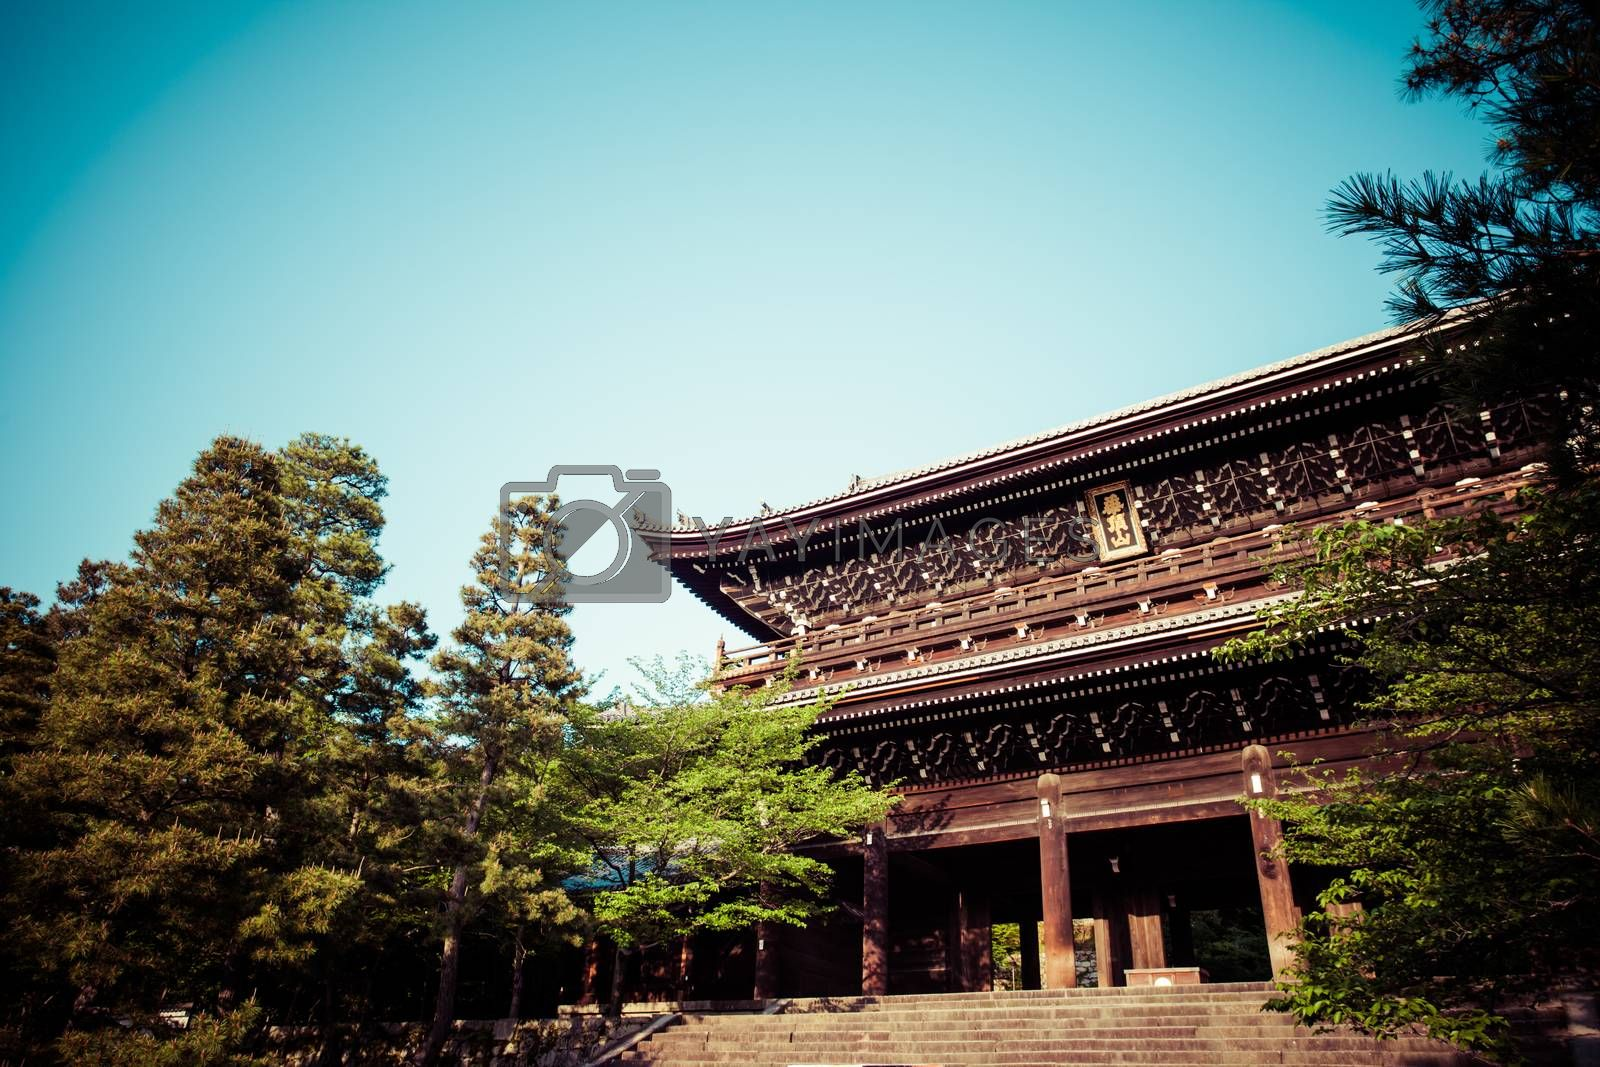 The main gate of Chion-in Temple in Kyoto